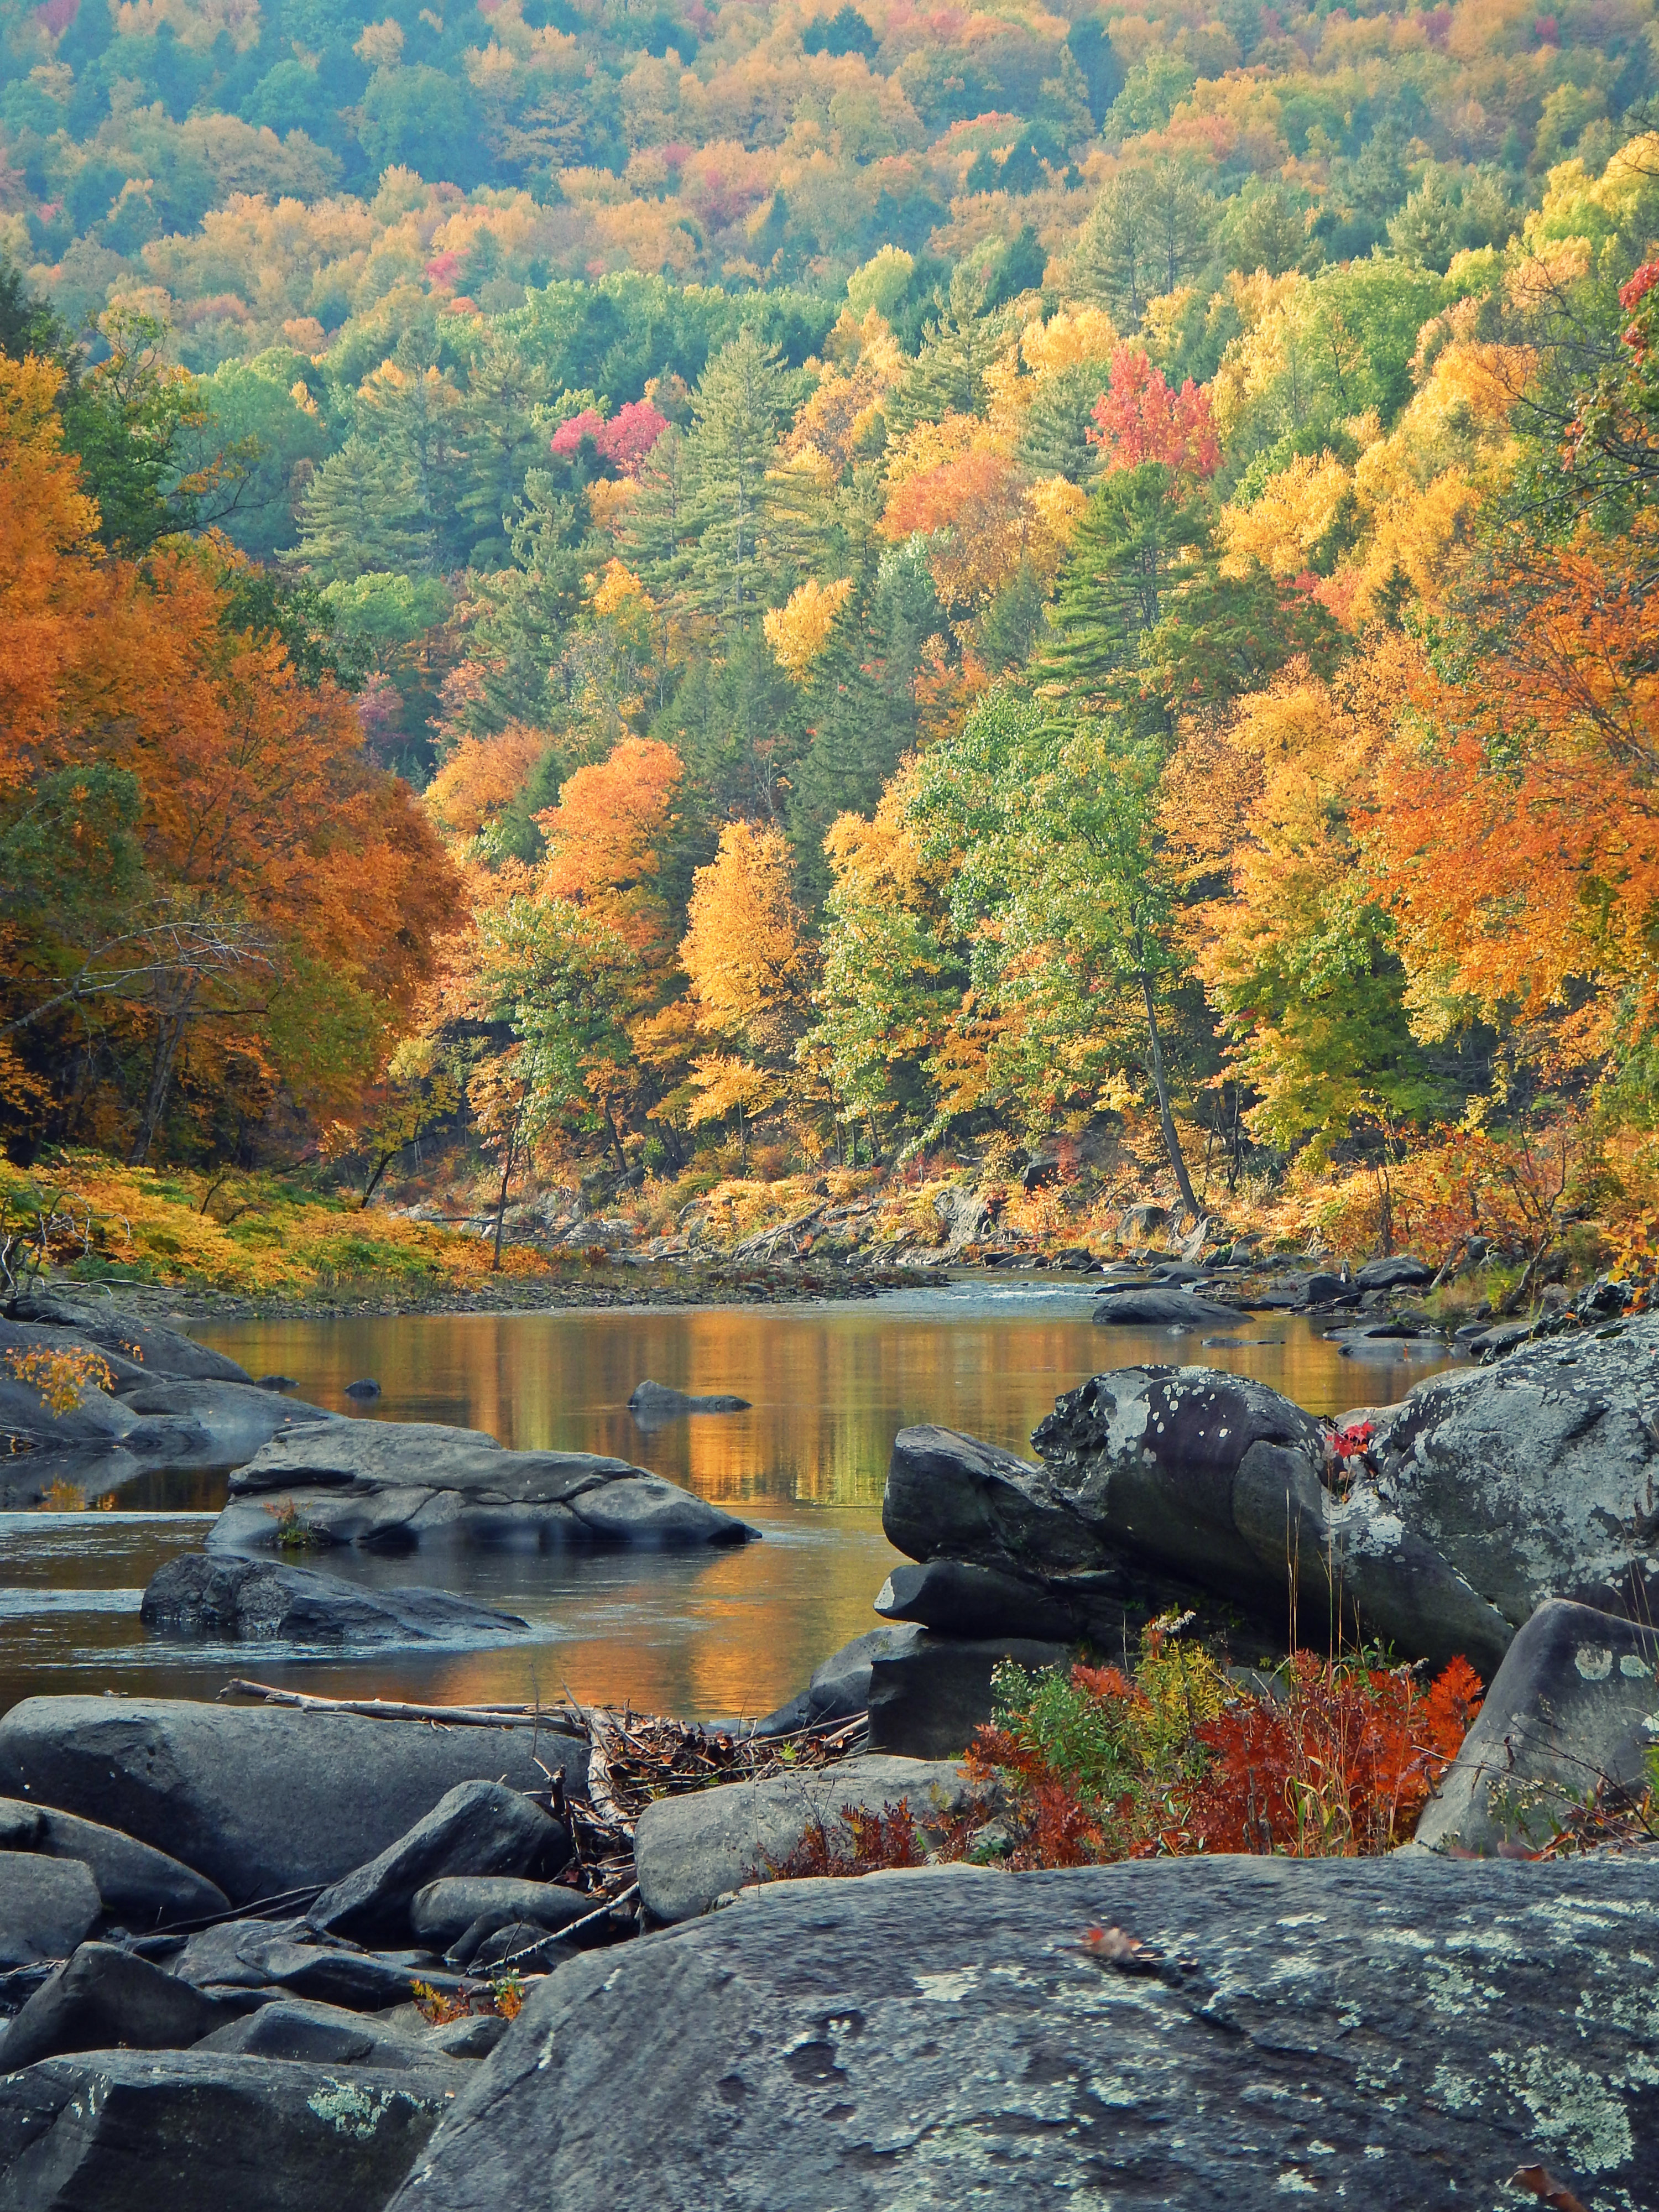 Massachusetts fly fishing trout haven for Mass fish stocking